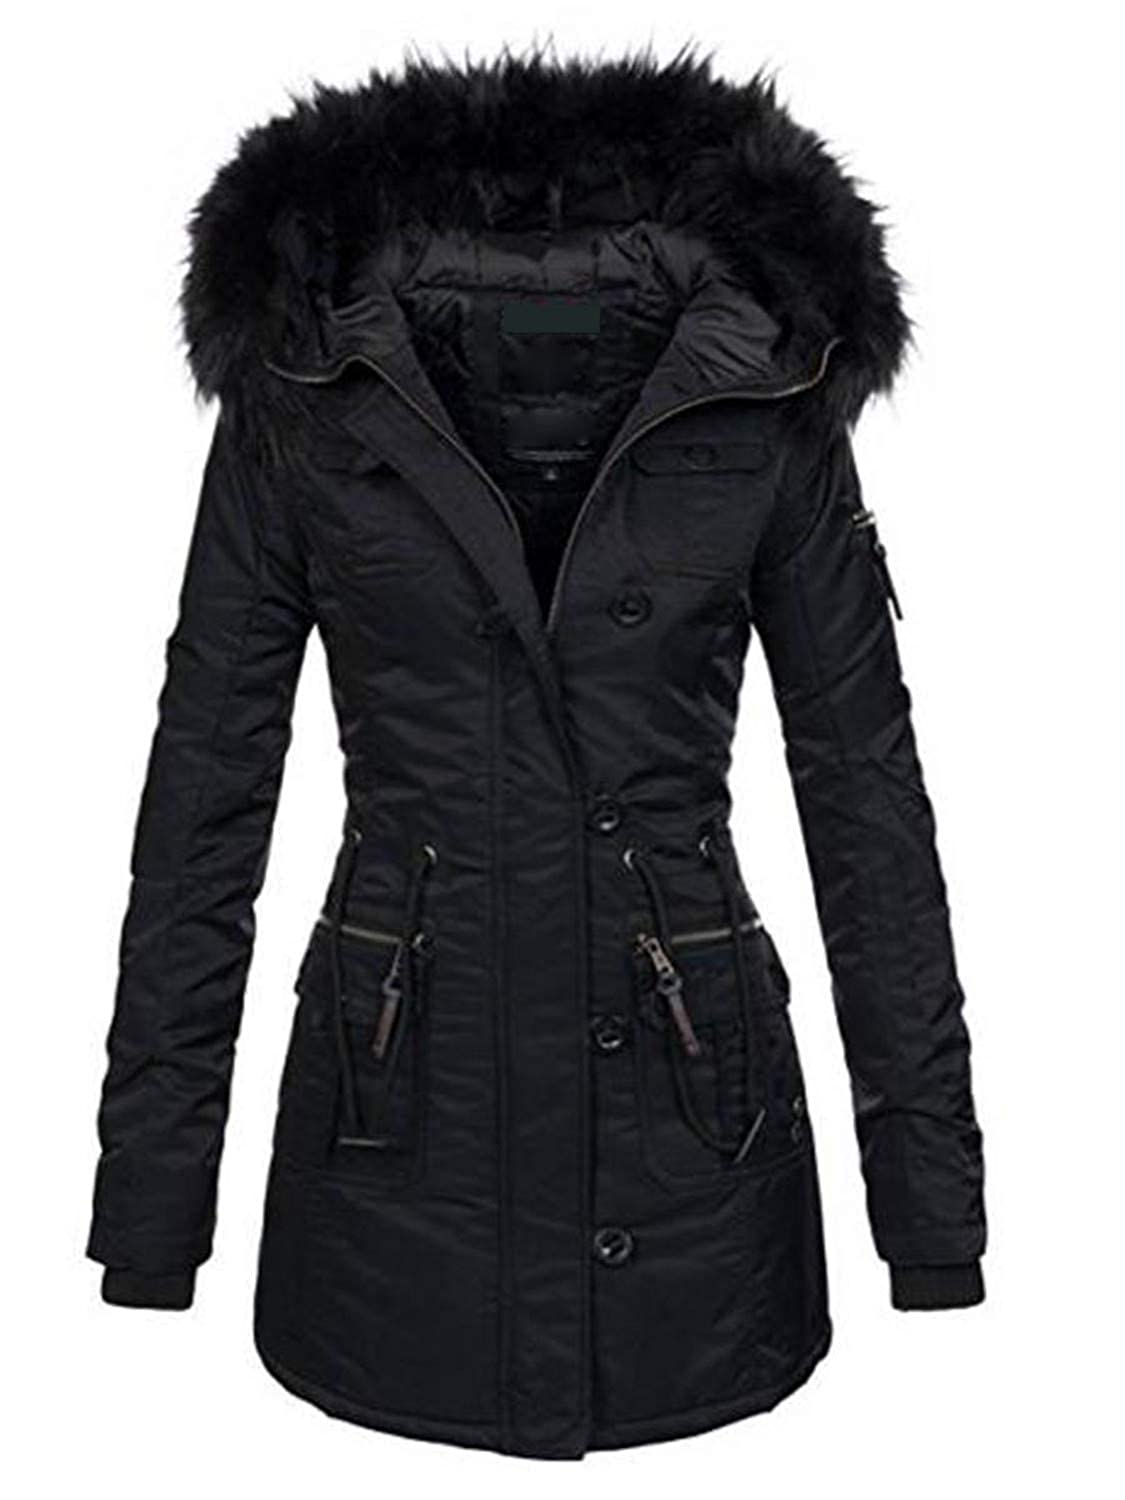 Amazon.com: New Women Winter Thicken Warm Coat Female Autumn ...